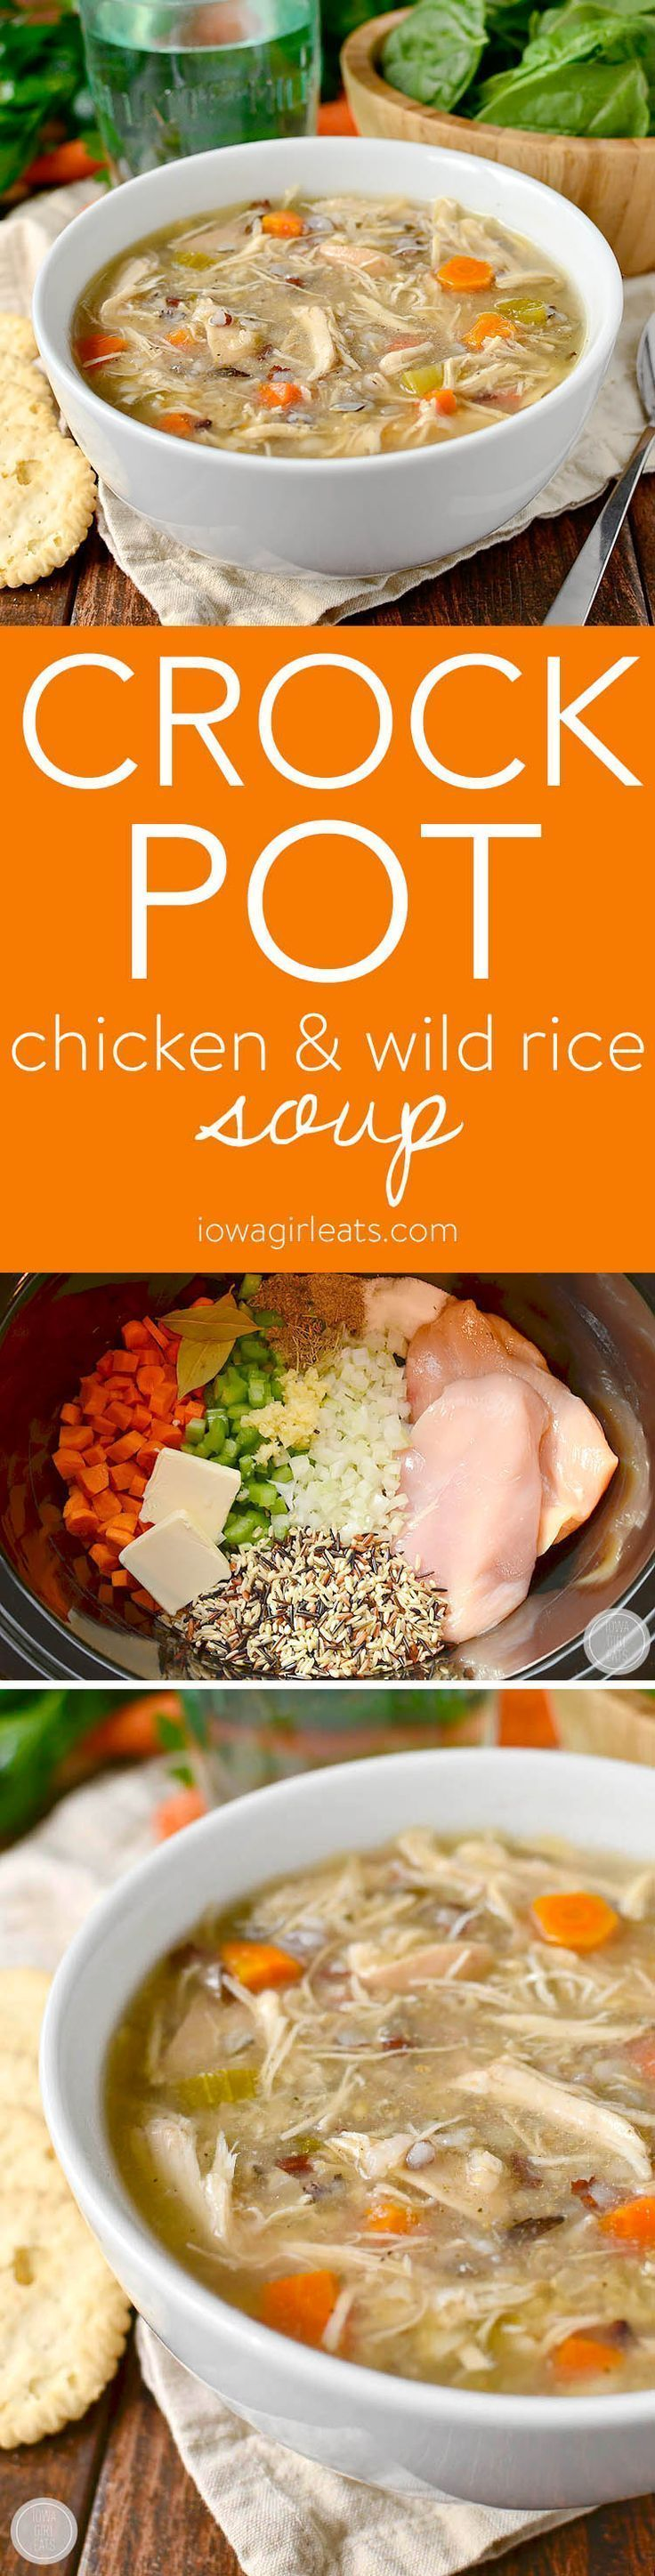 Crock Pot Chicken and Wild Rice Soup is a healthy, quick and easy crock pot recipe for busy nights. Simply add the ingredients into the crock then push on! | iowagirleats.com